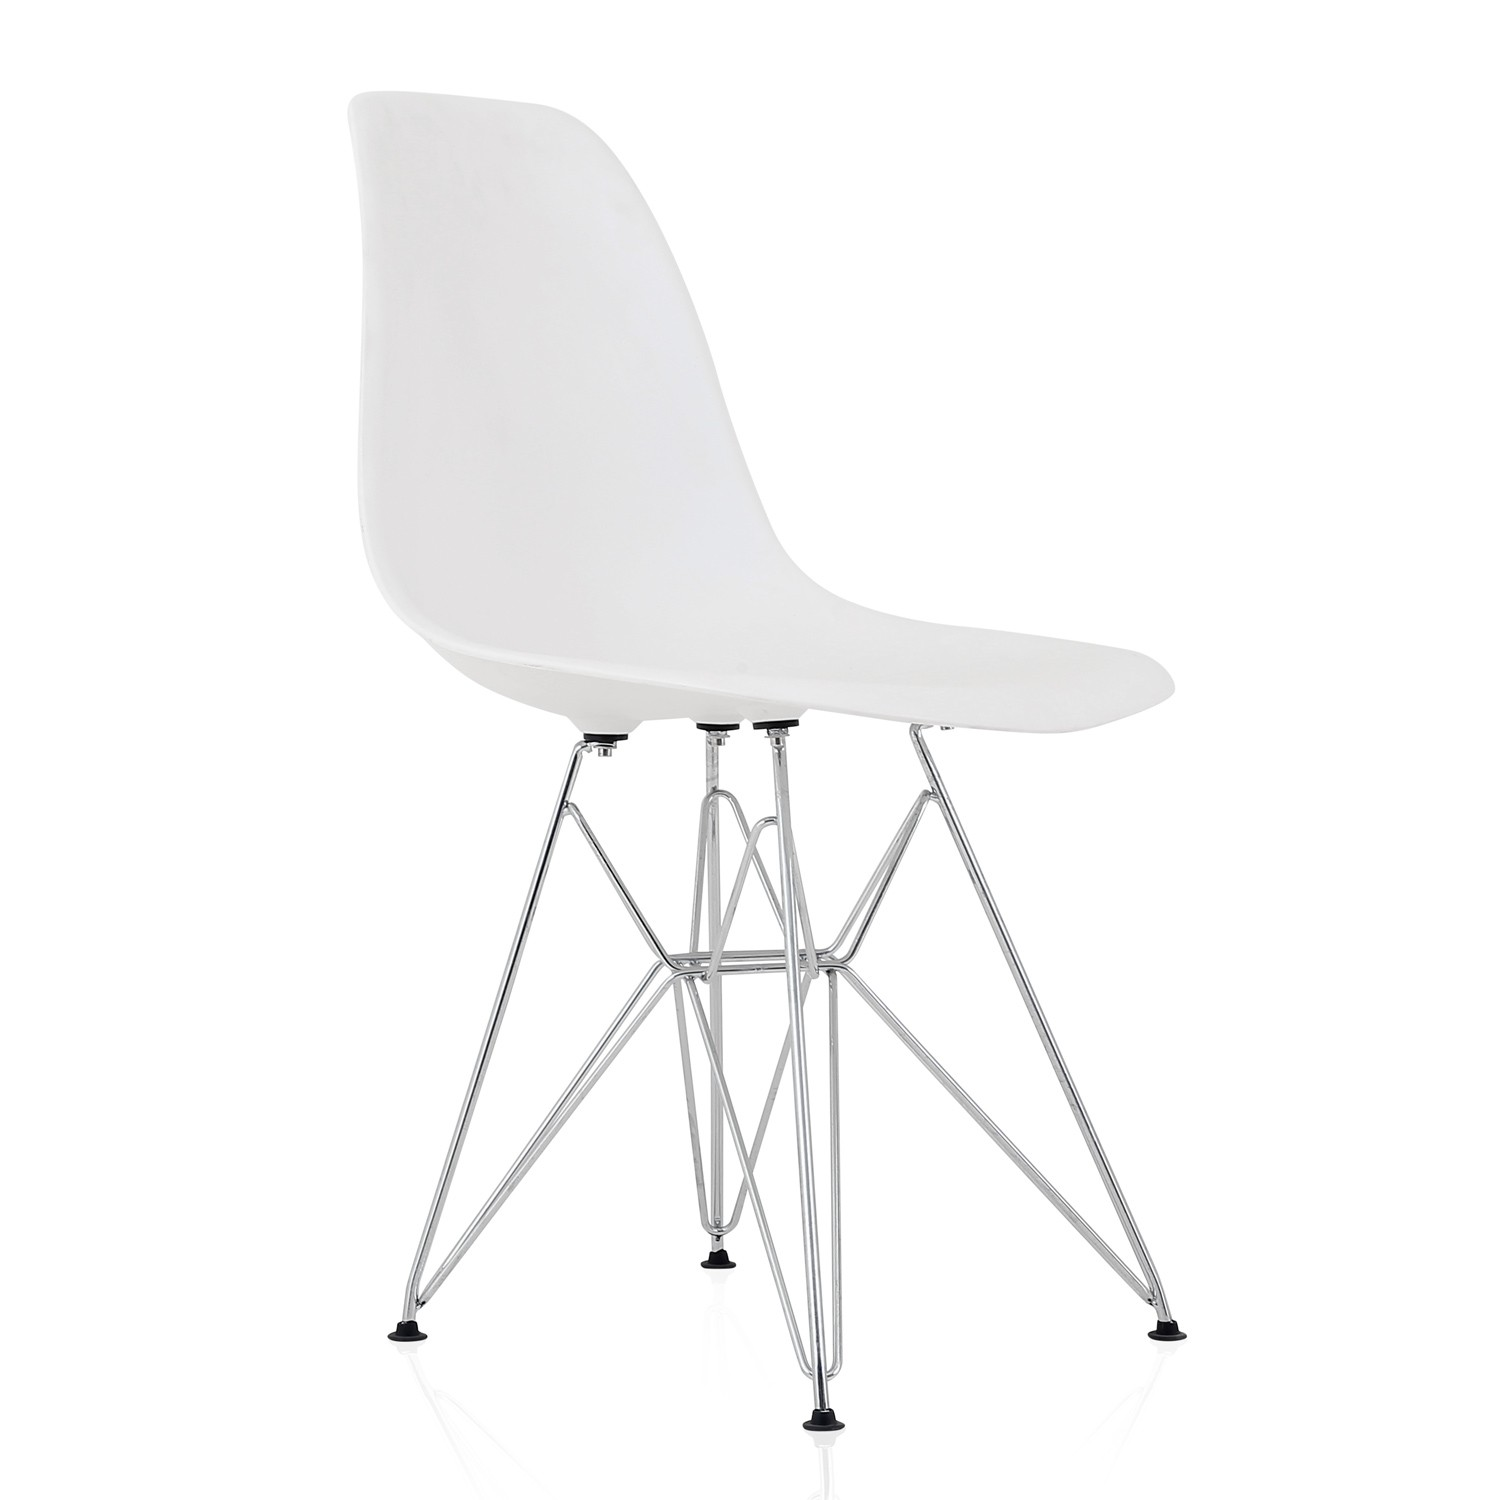 Eames Style DSR Molded White Plastic Dining Shell Chair with Steel